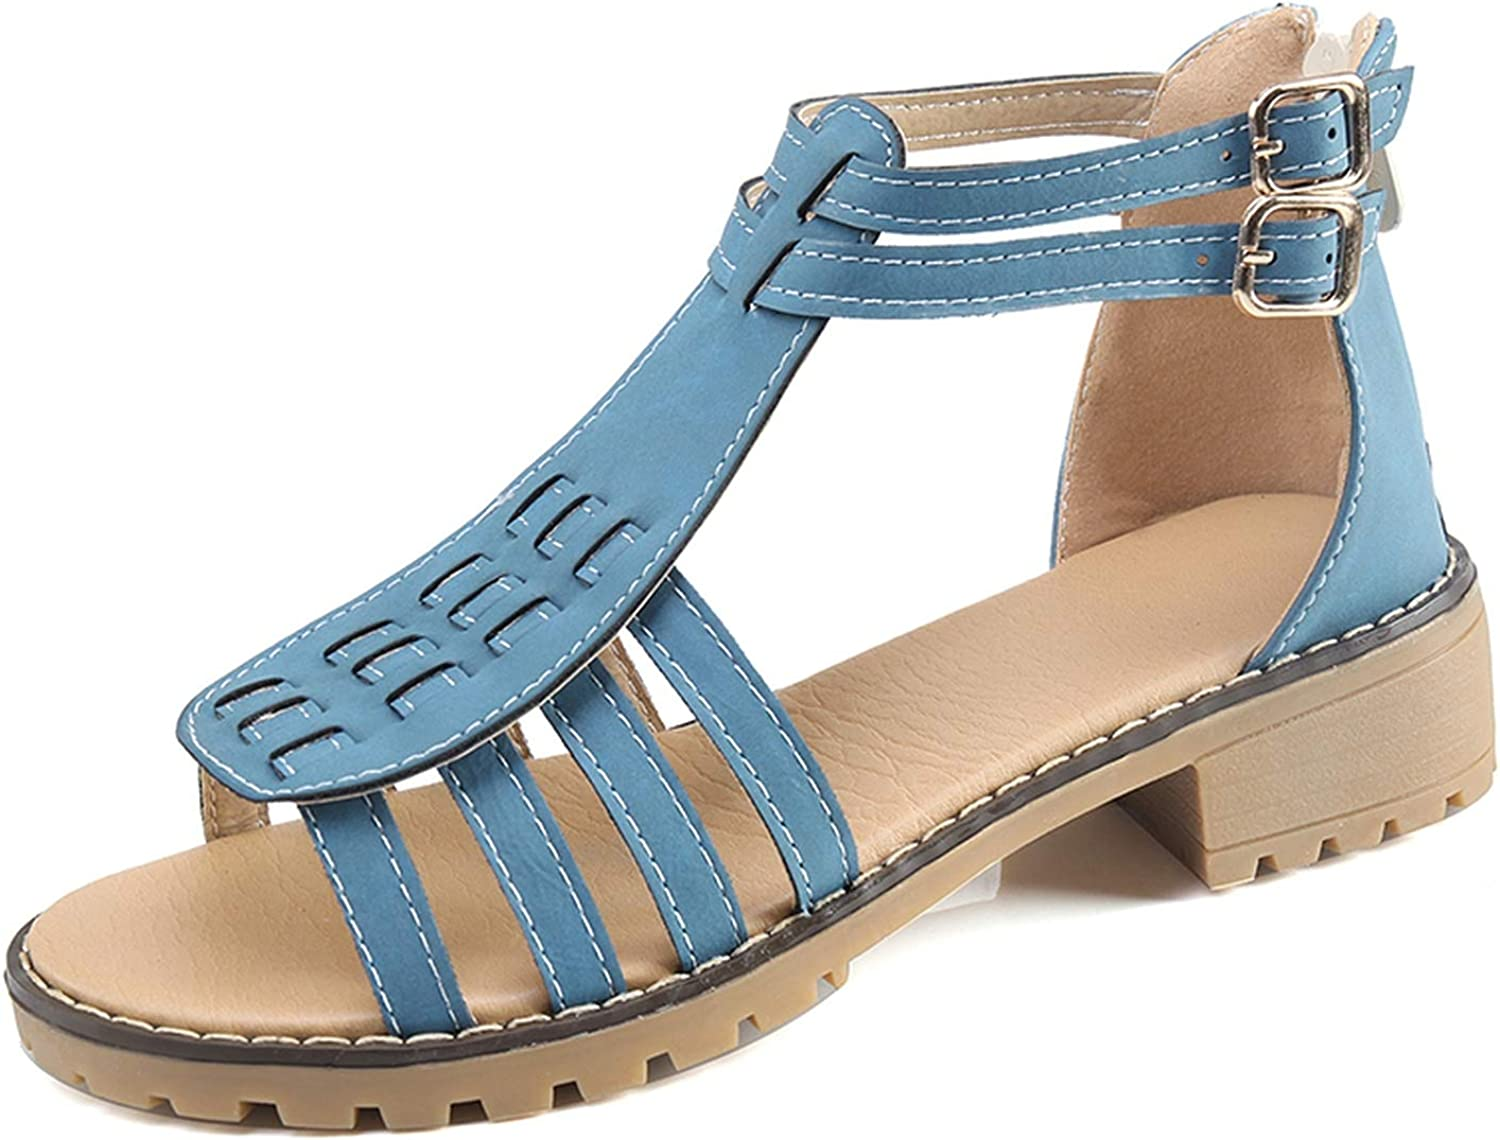 Rome Gladiator Summer Sandals Woman shoes Fashion Zip Up Casual shoes